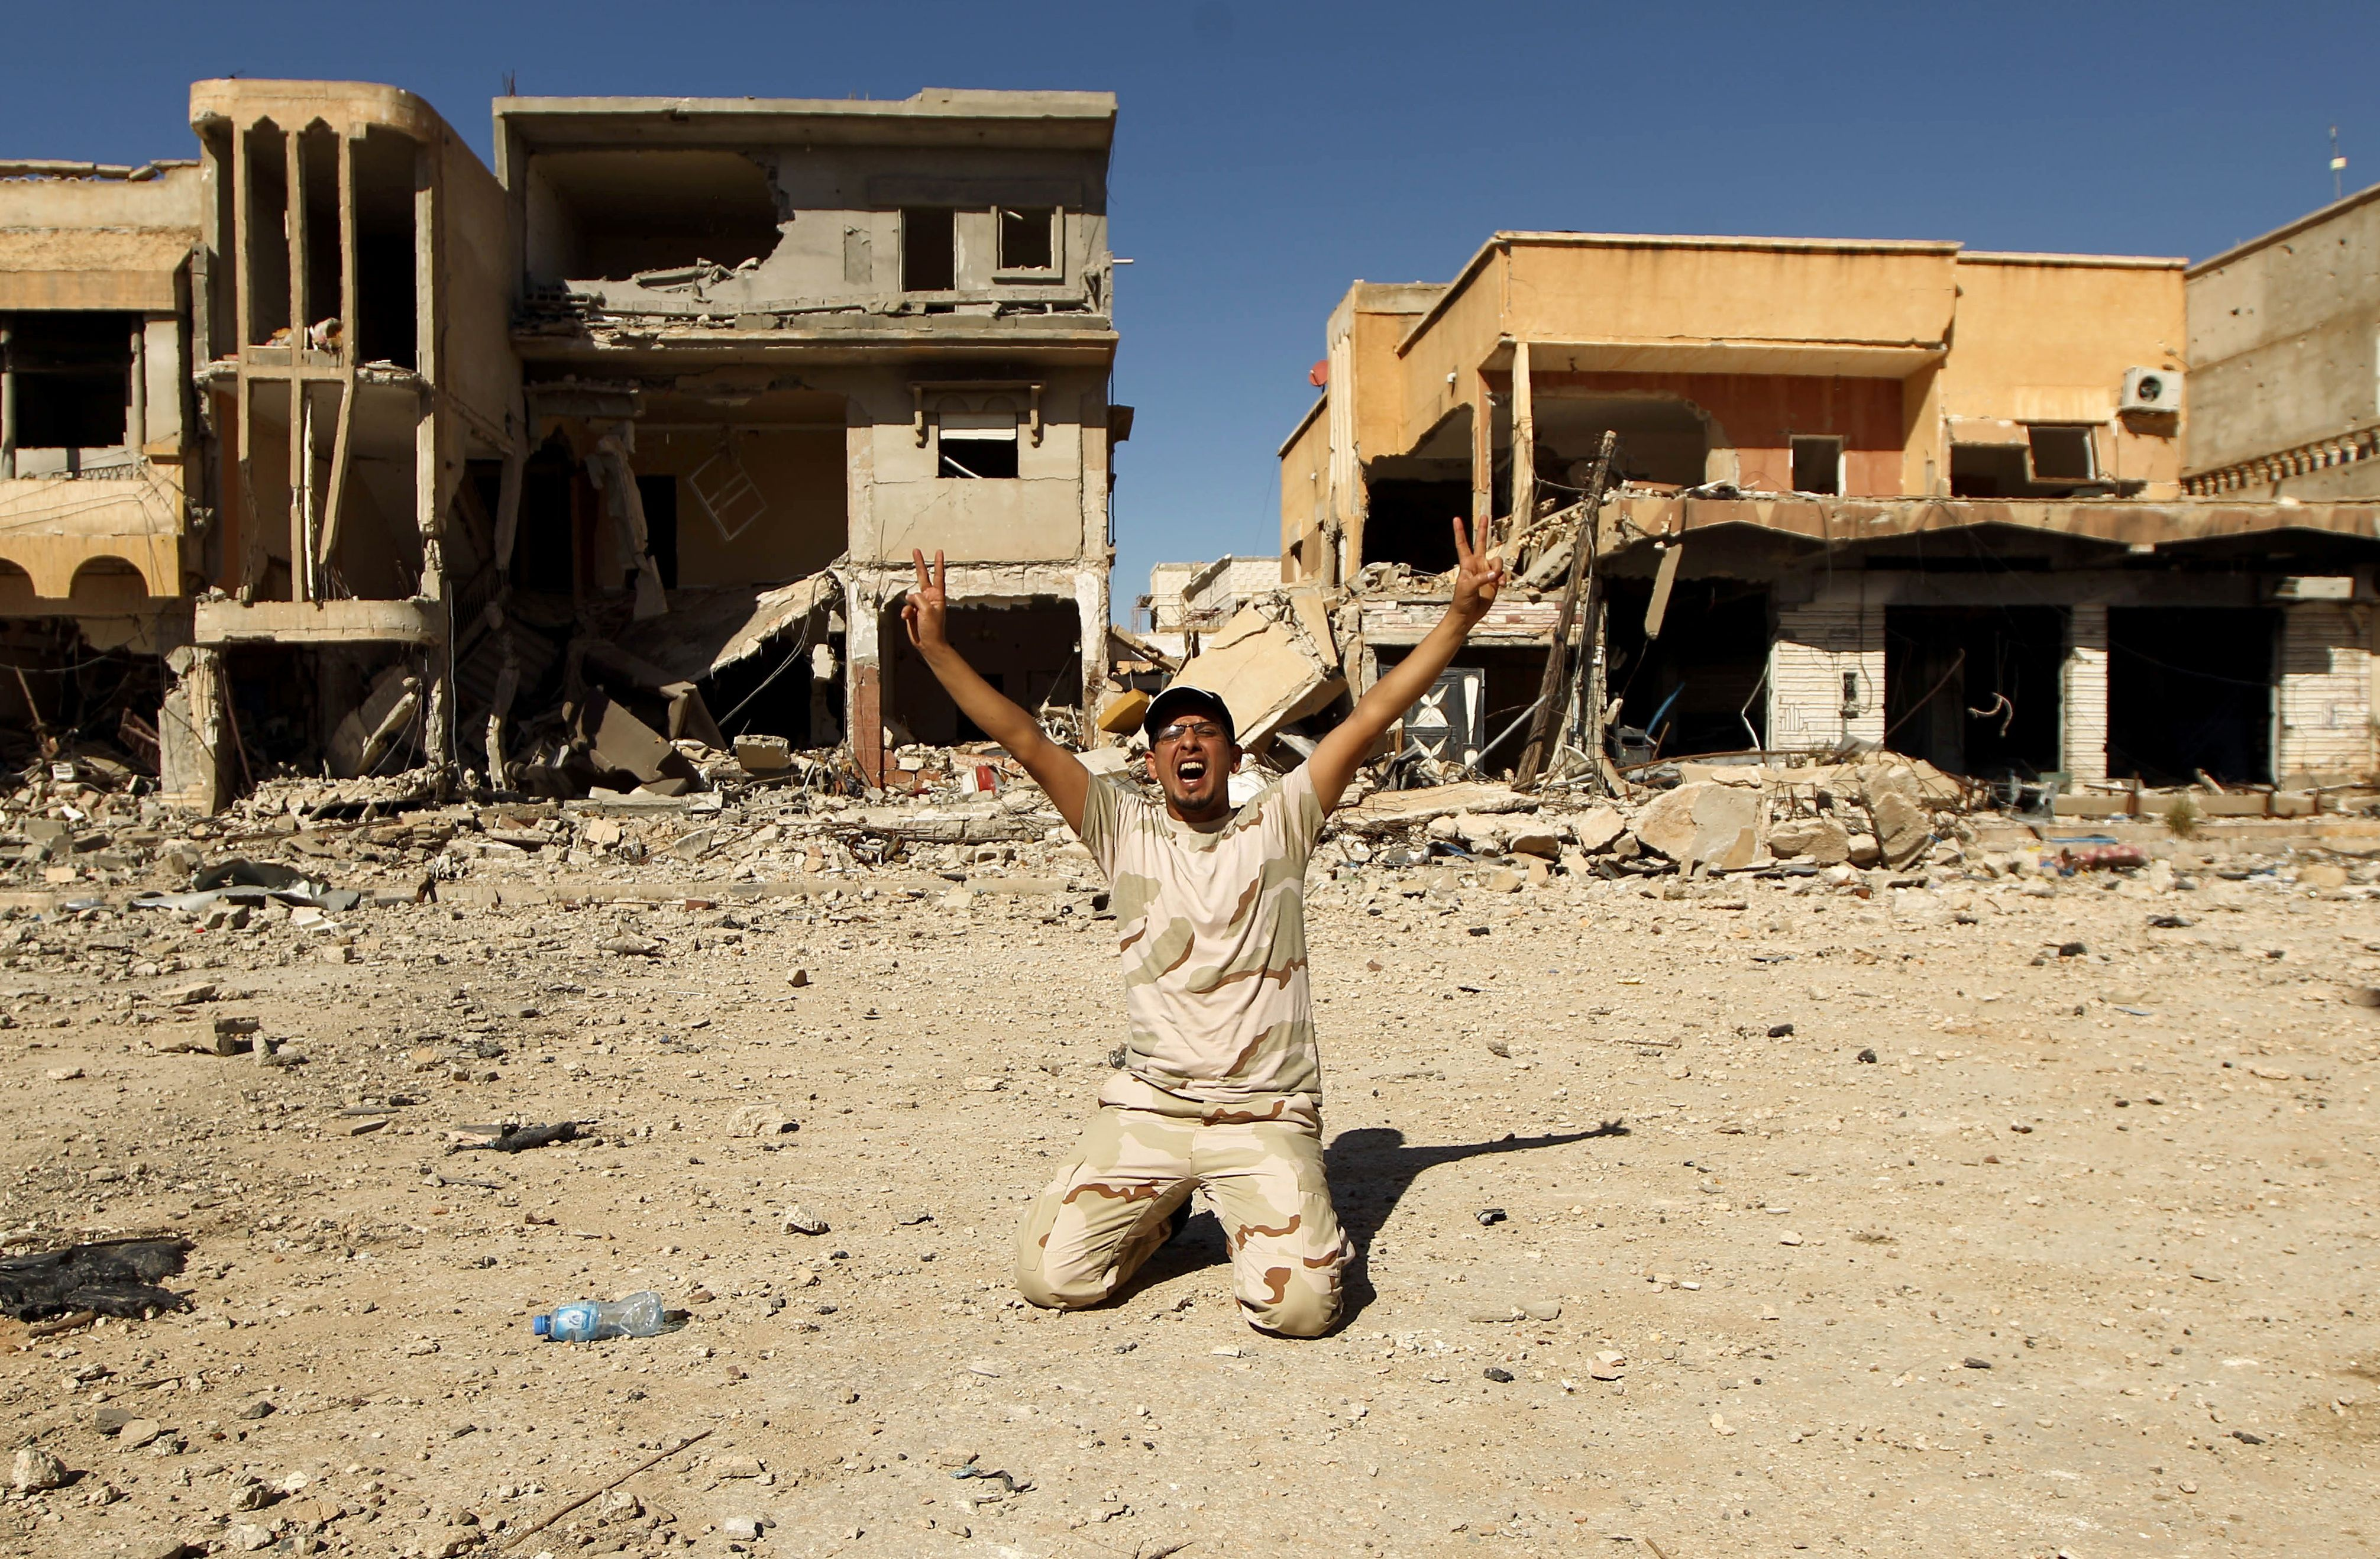 A pro-government fighter in Benghazi celebrates victory.